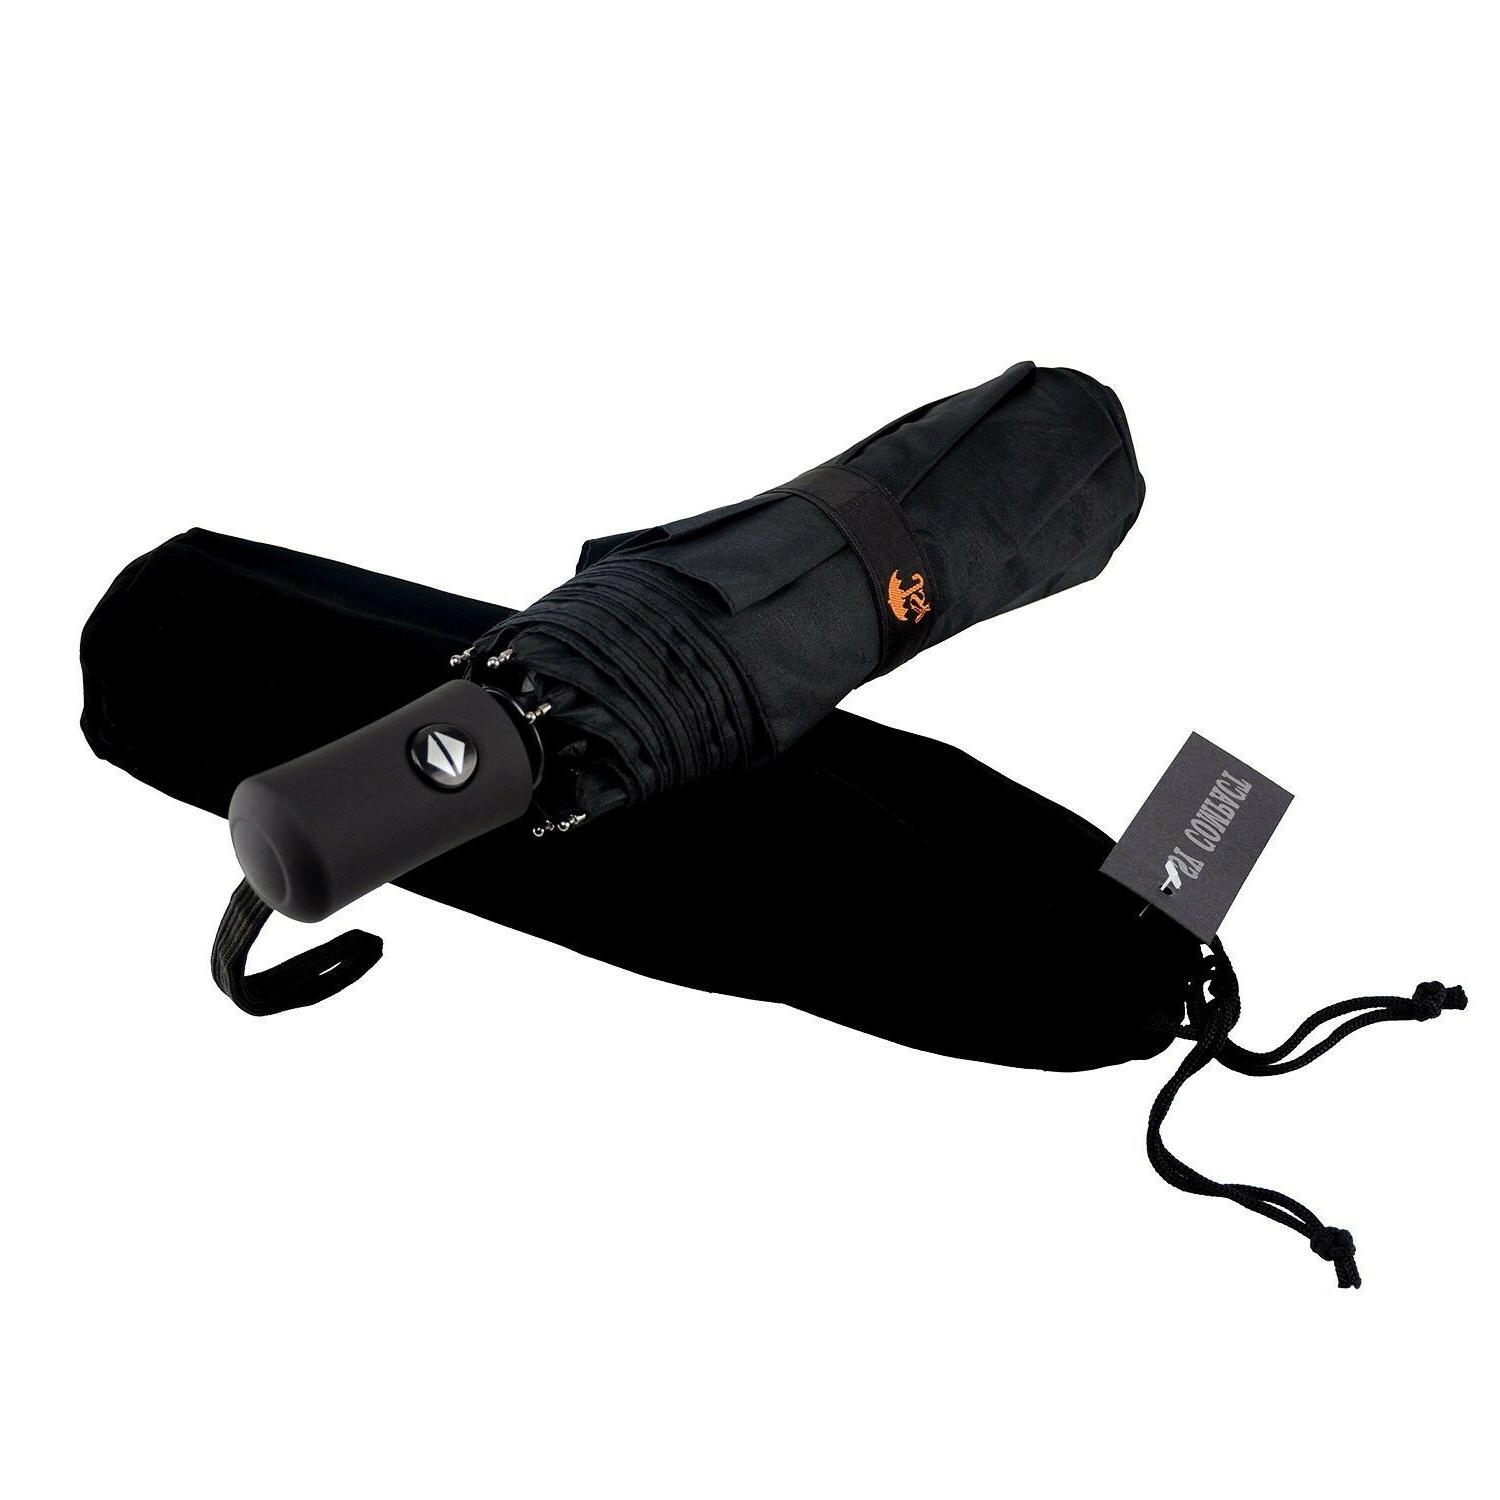 compact travel umbrella windproof auto open close